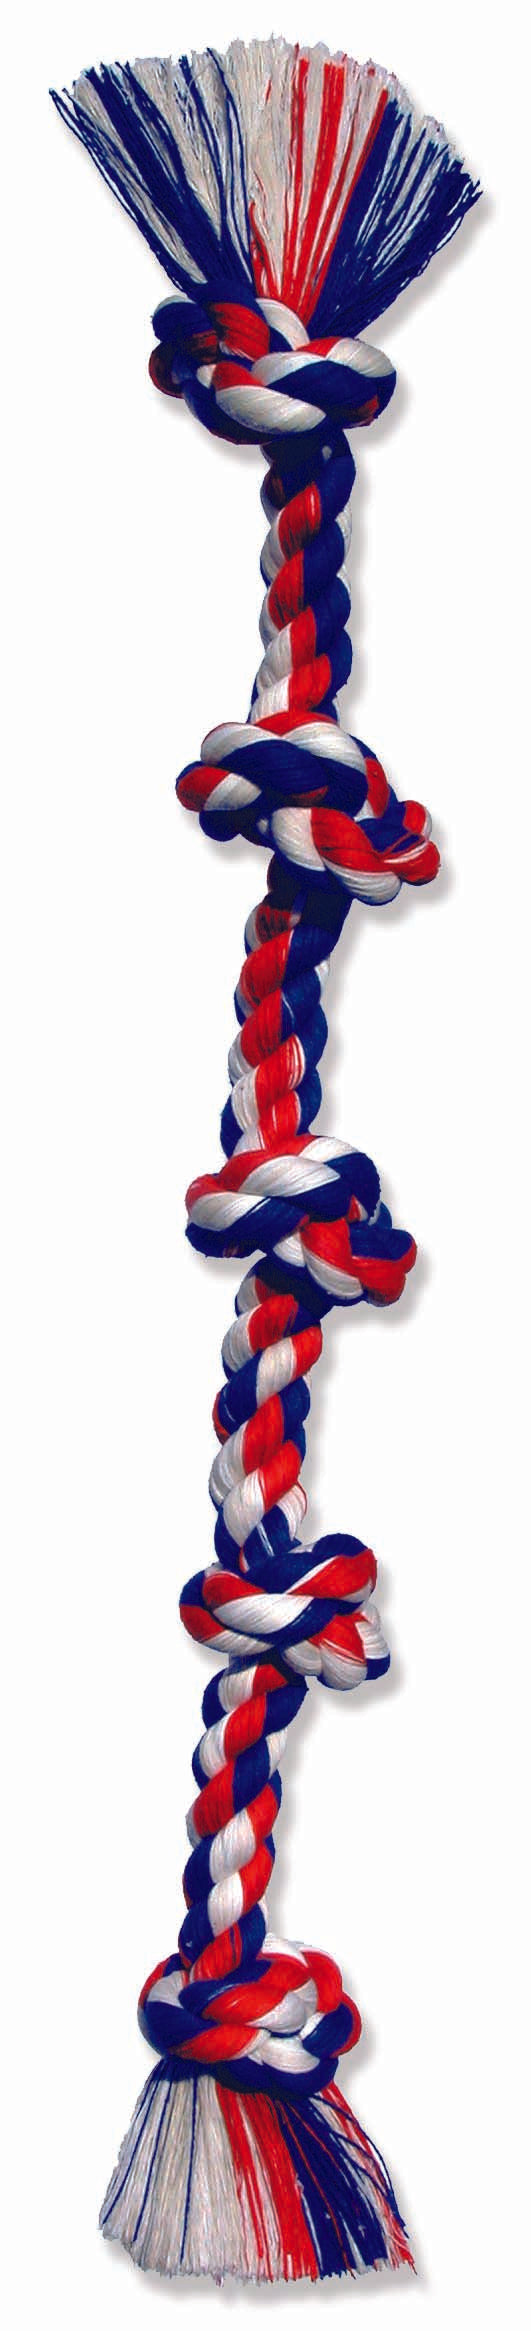 Mammoth Flossy Chews 5 knot Tugs Color Rope Super X-Large Dog Toys 72 Inch